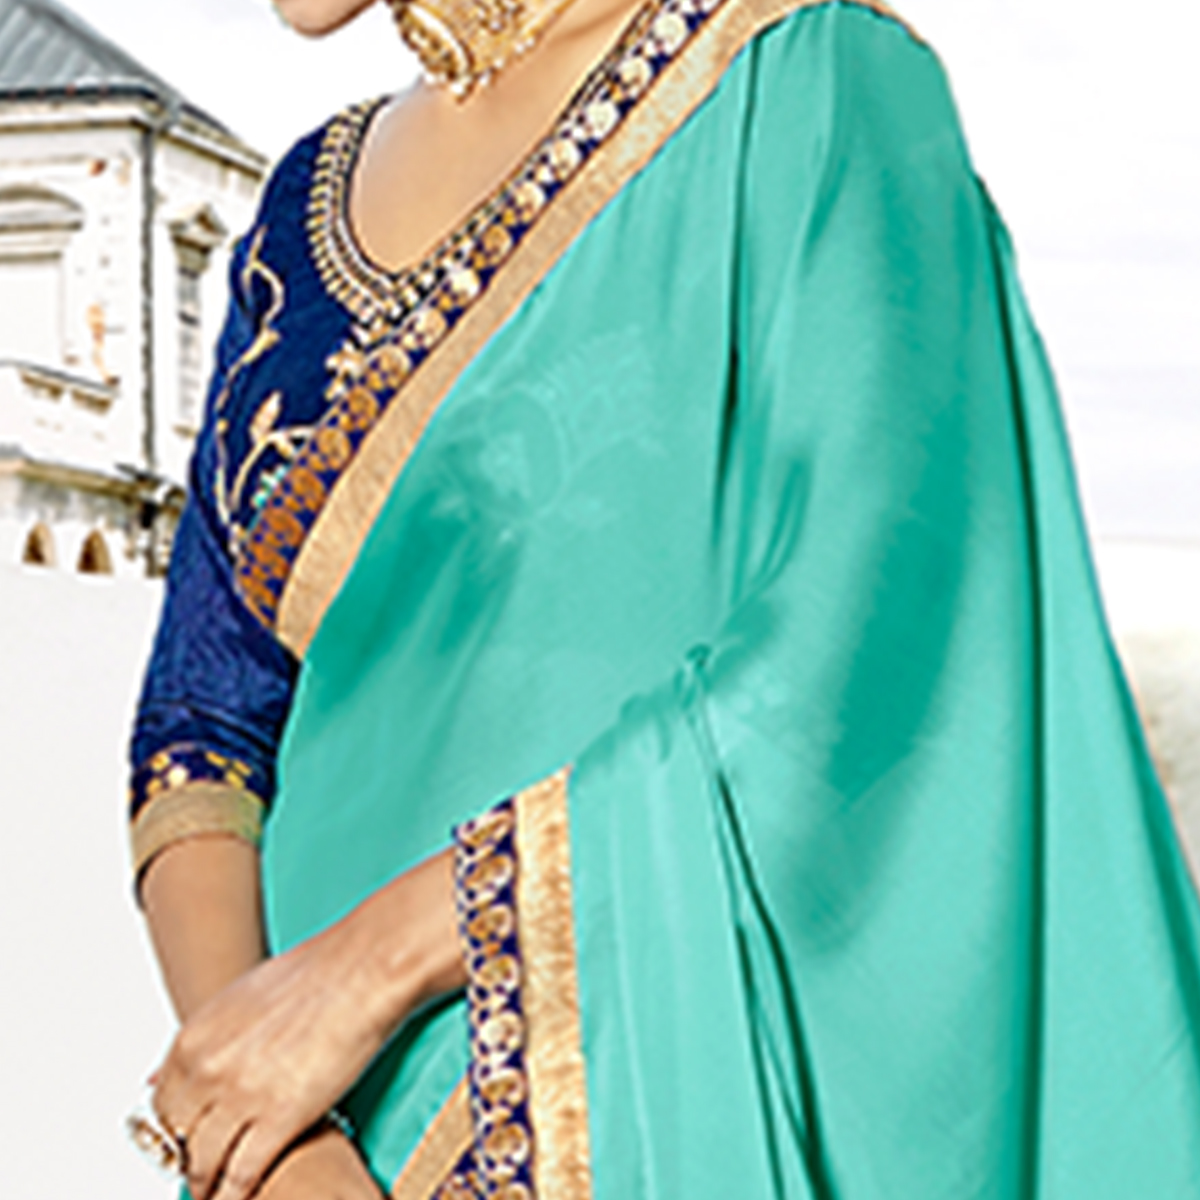 Irresistible Turquoise Green-Royal Blue Colored Partywear Embroidered Silk-Georgette Half-Half Saree